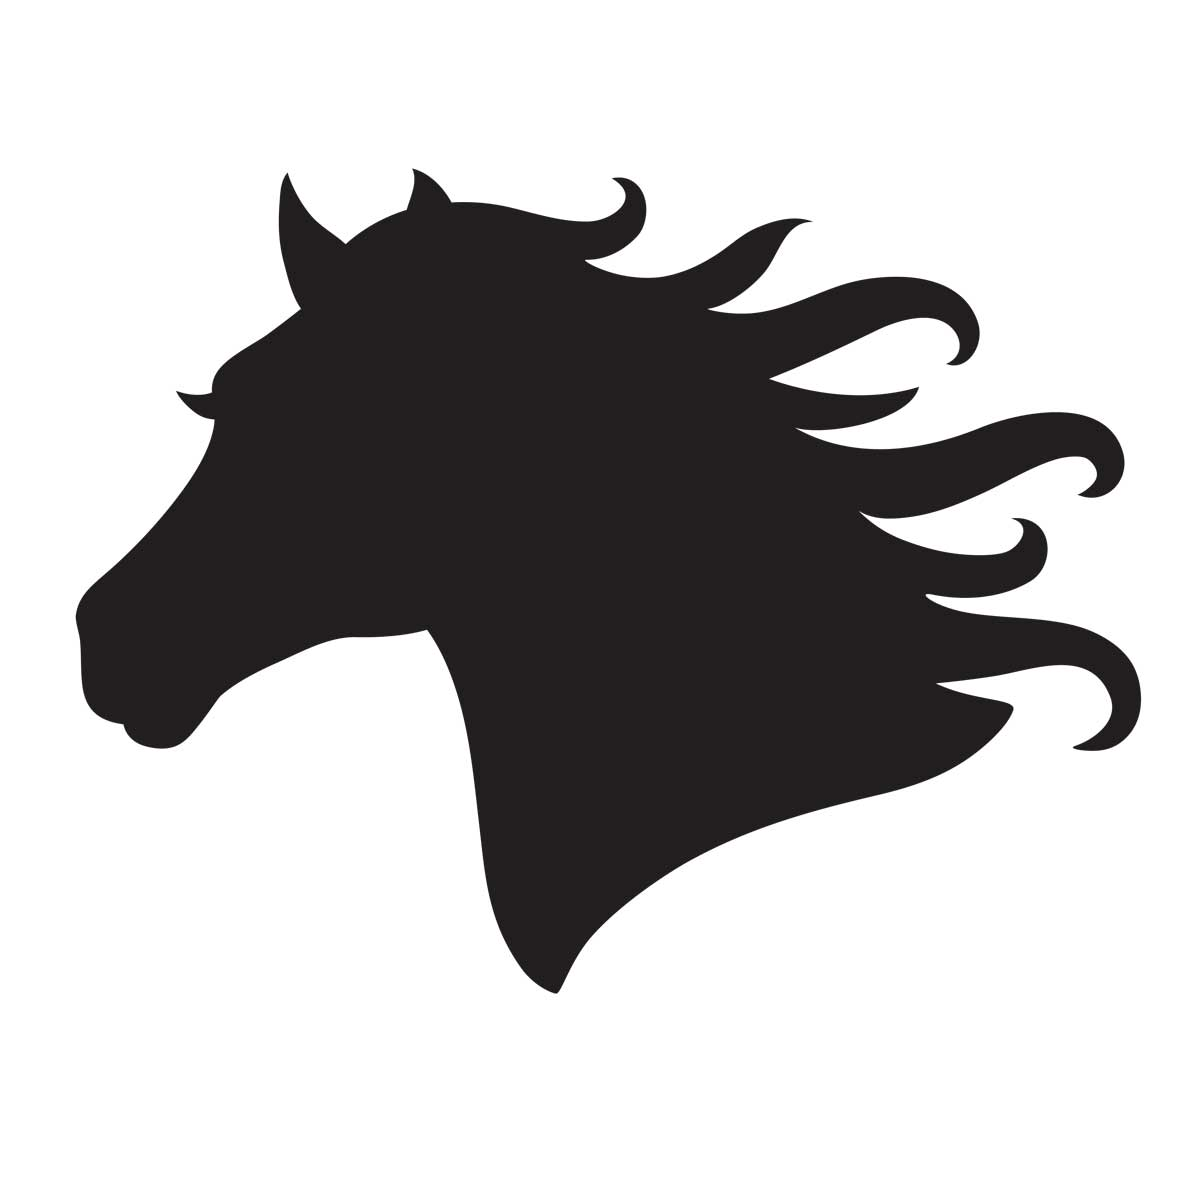 Running Horses Silhouette At Getdrawings Free For Personal Use